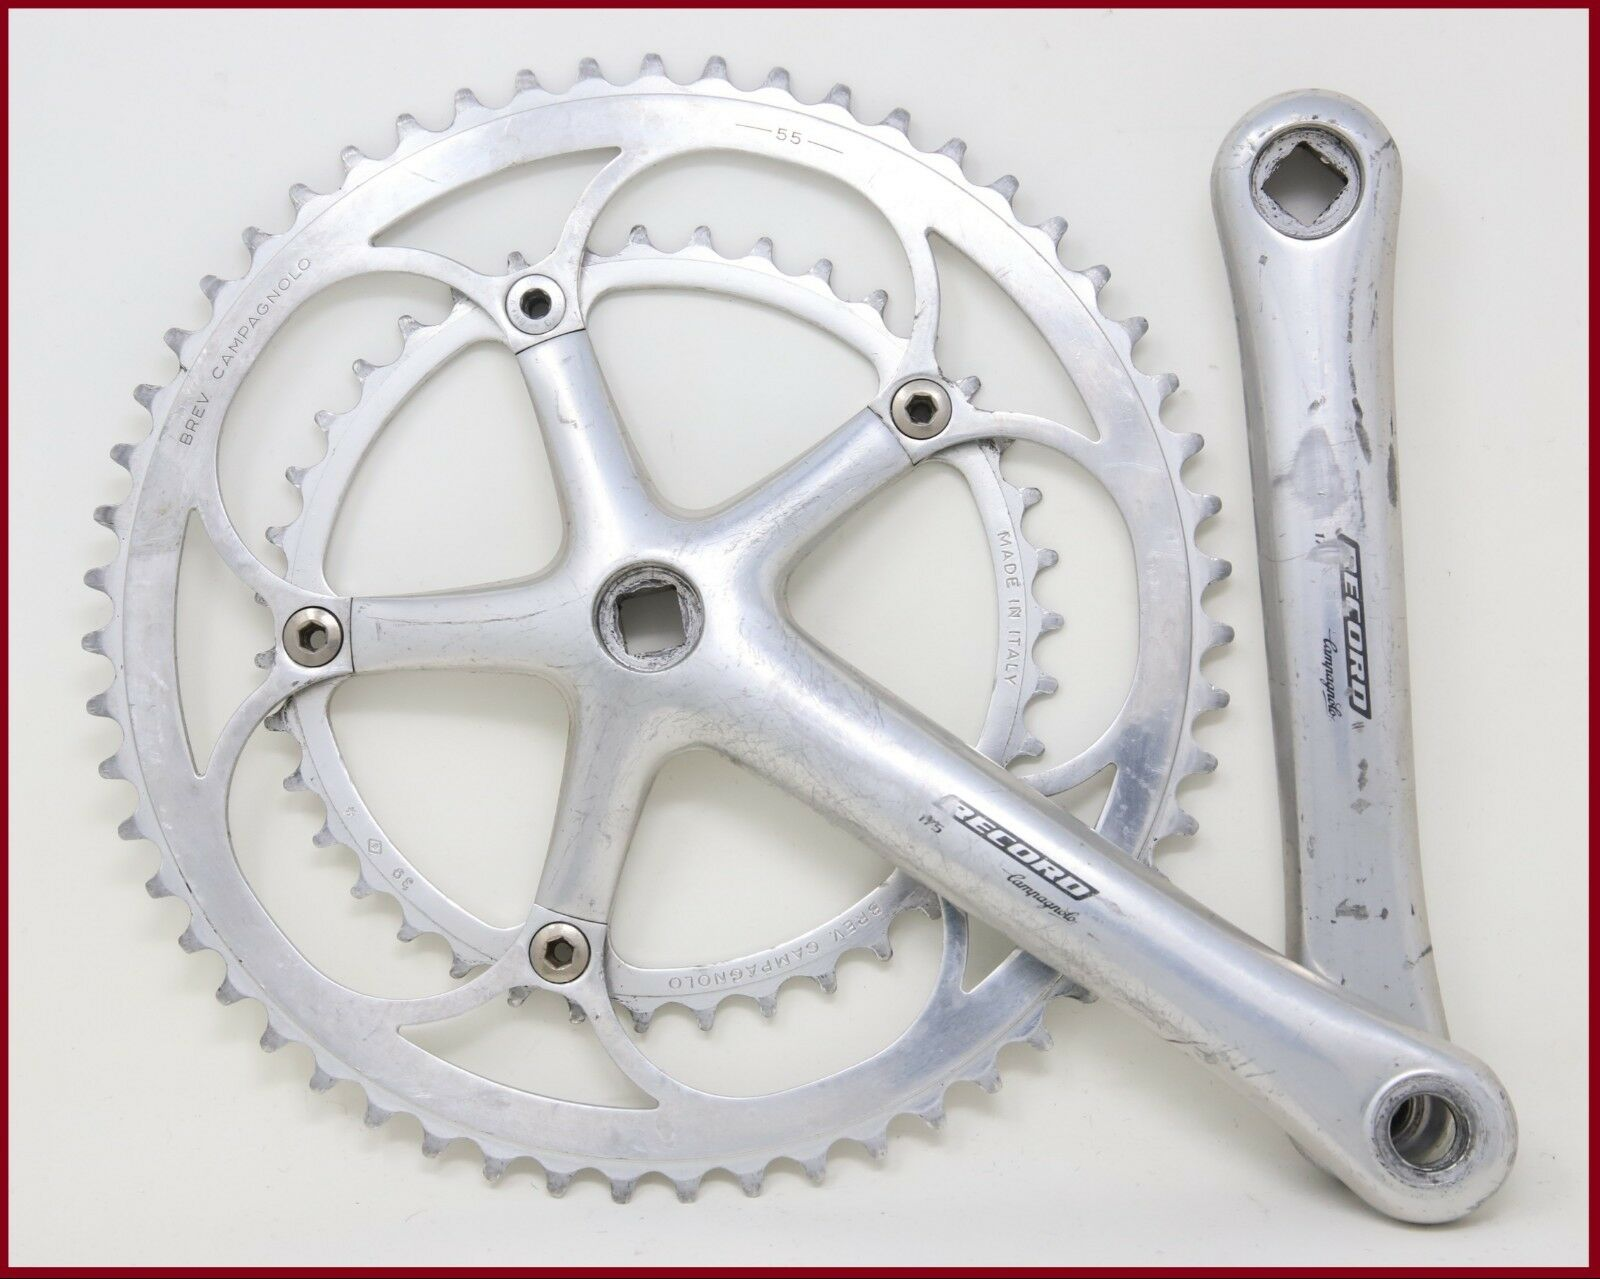 CAMPAGNOLO RECORD 10S CRANKSET  175mm 55 39 VINTAGE 90s SQUARE TAPER TIME TRIAL  the latest